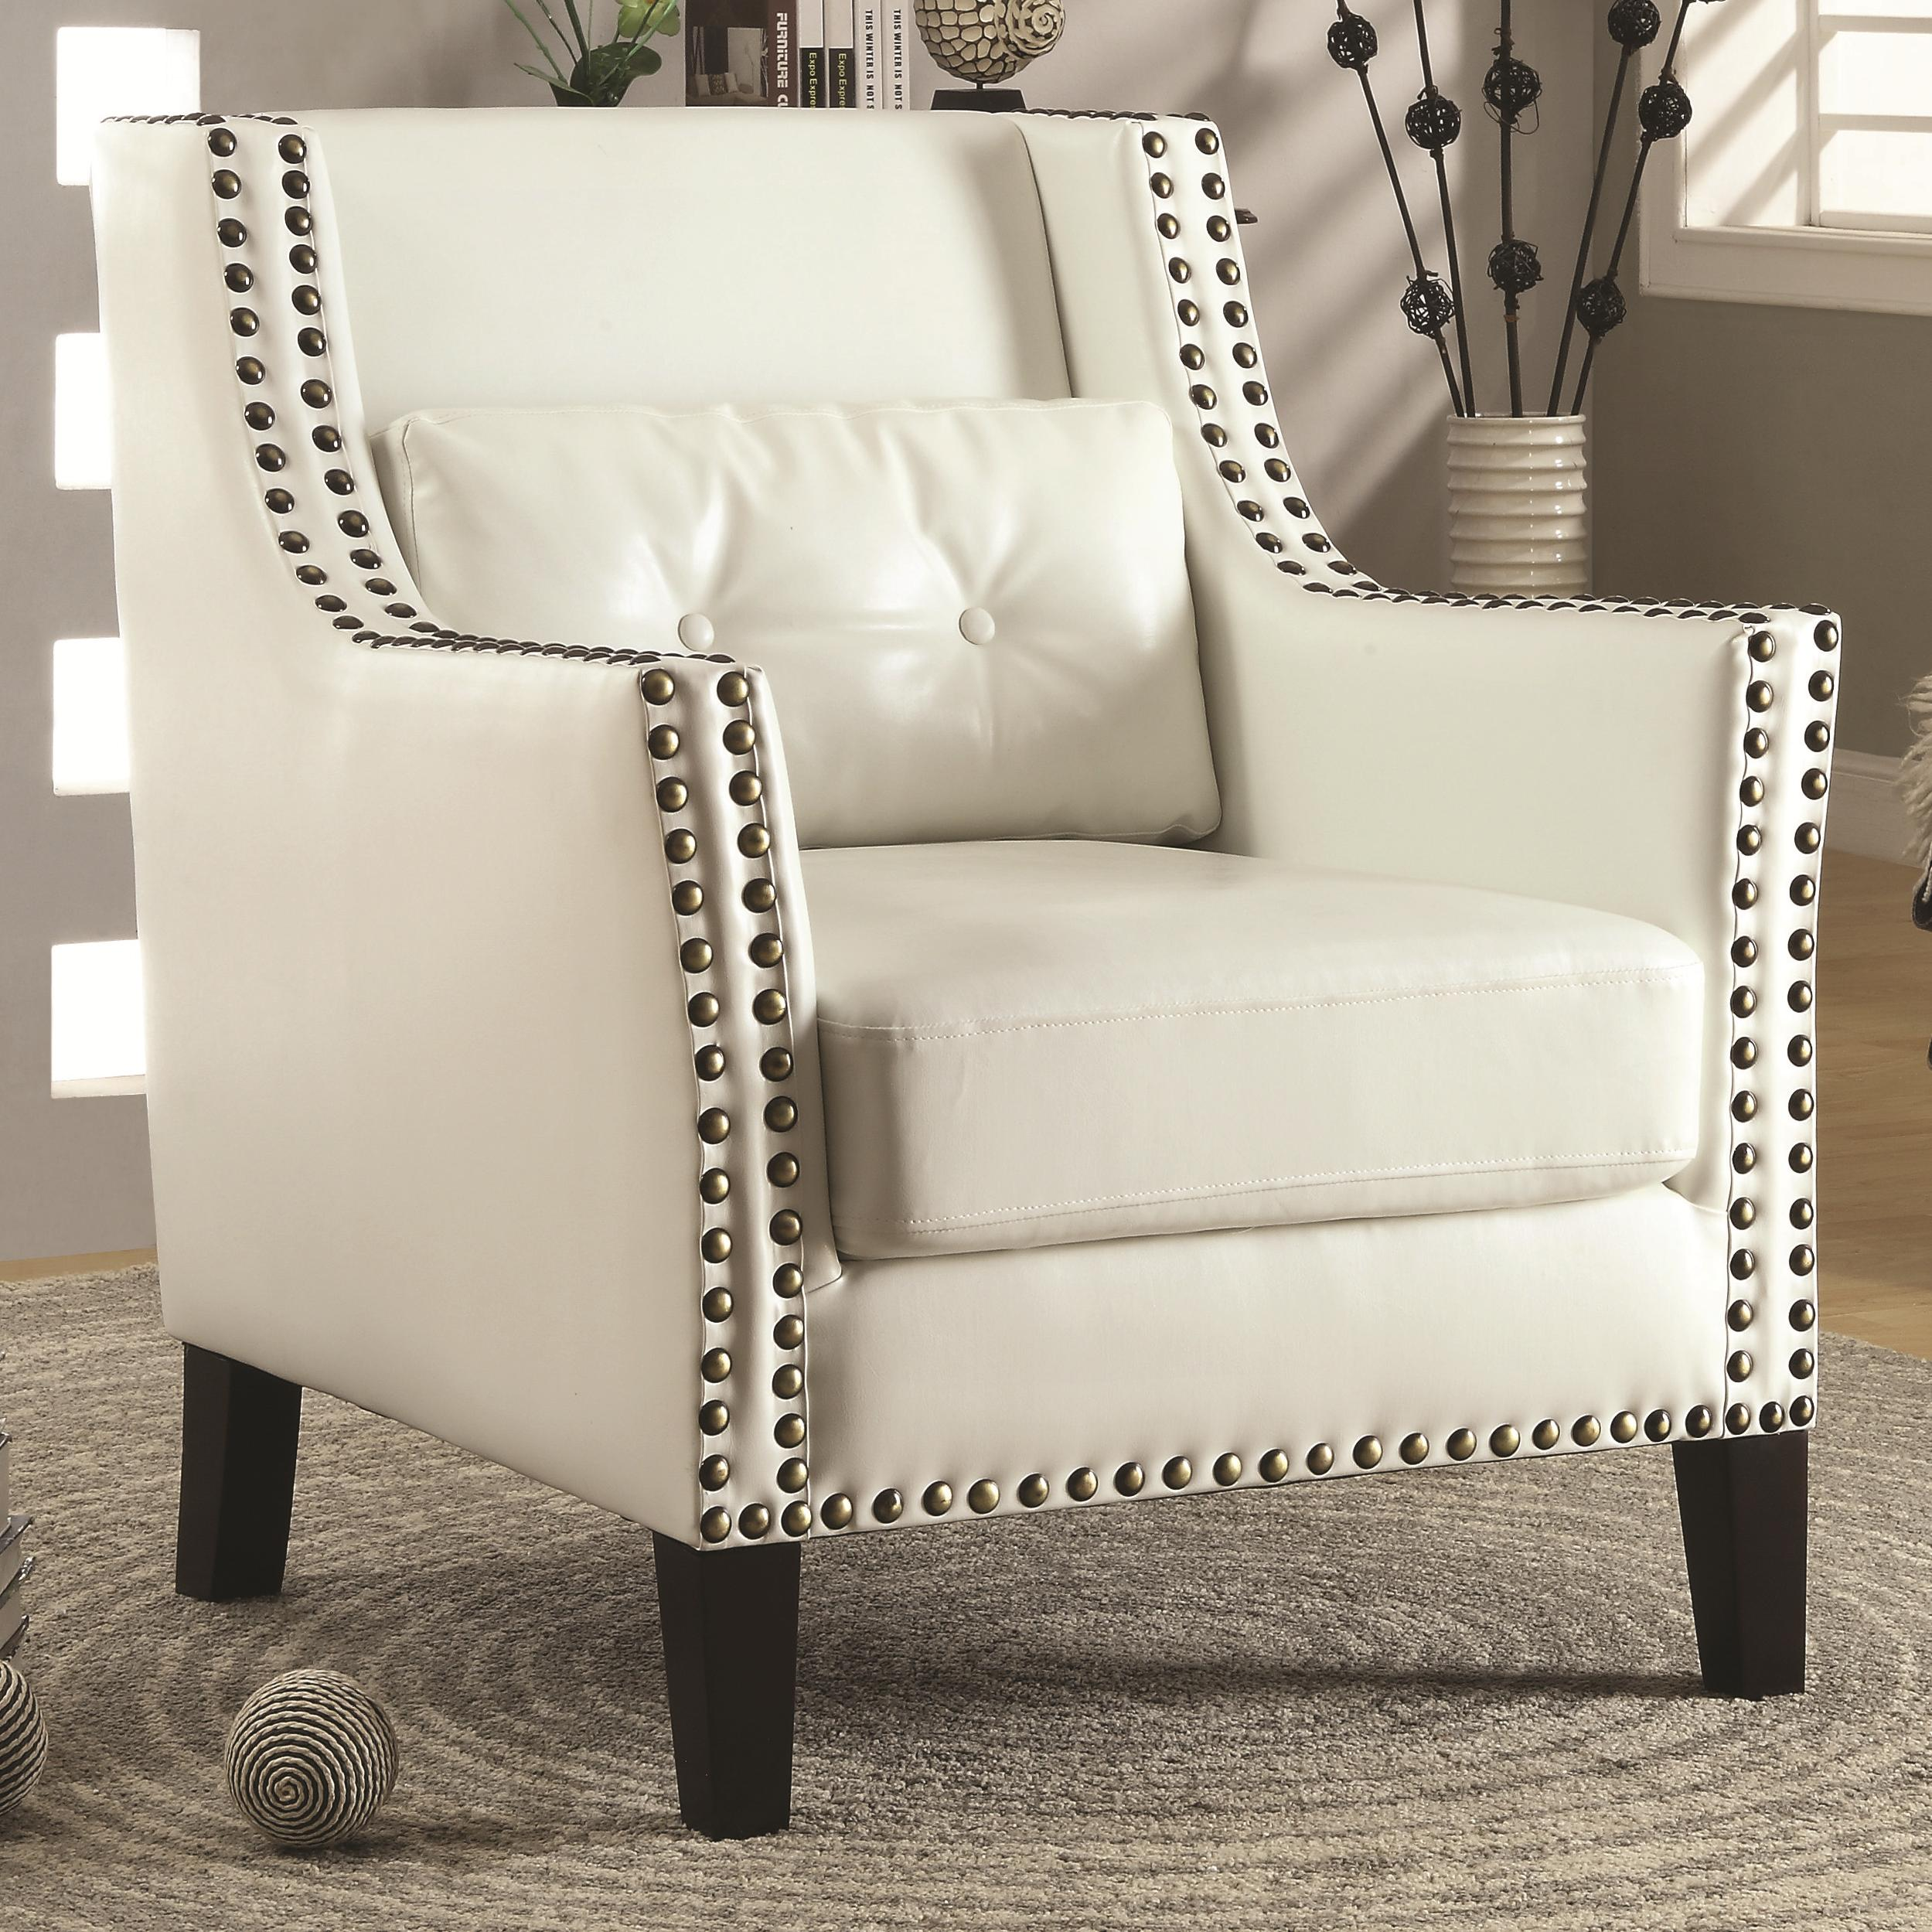 Coaster Accent Chair Accent Seating Transitional Wing Chair With Nail Heads By Coaster At Dunk Bright Furniture